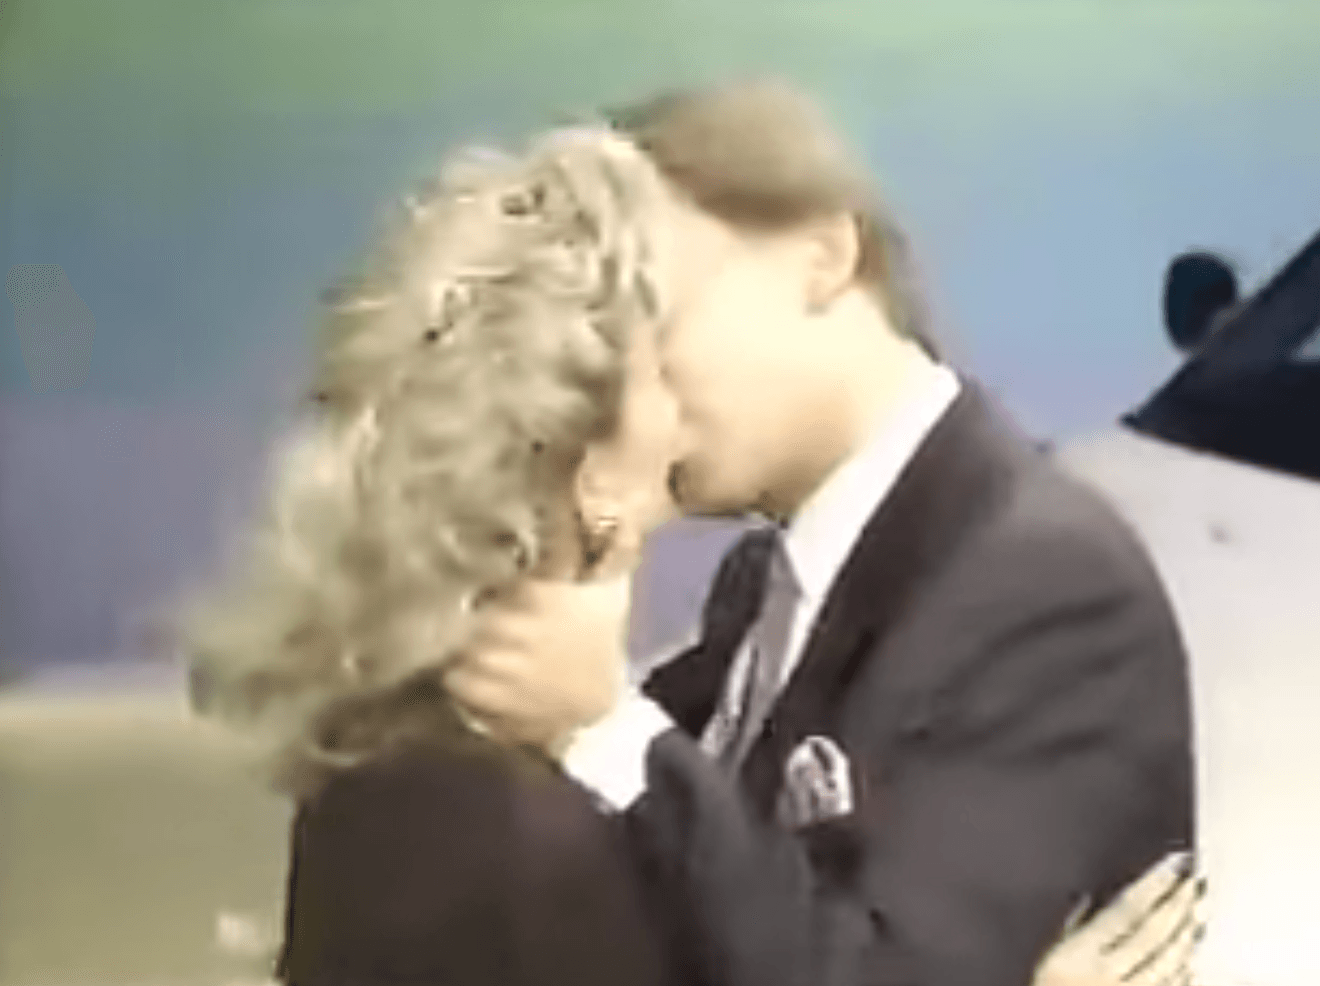 Vanna White and Pat Sajak kissing